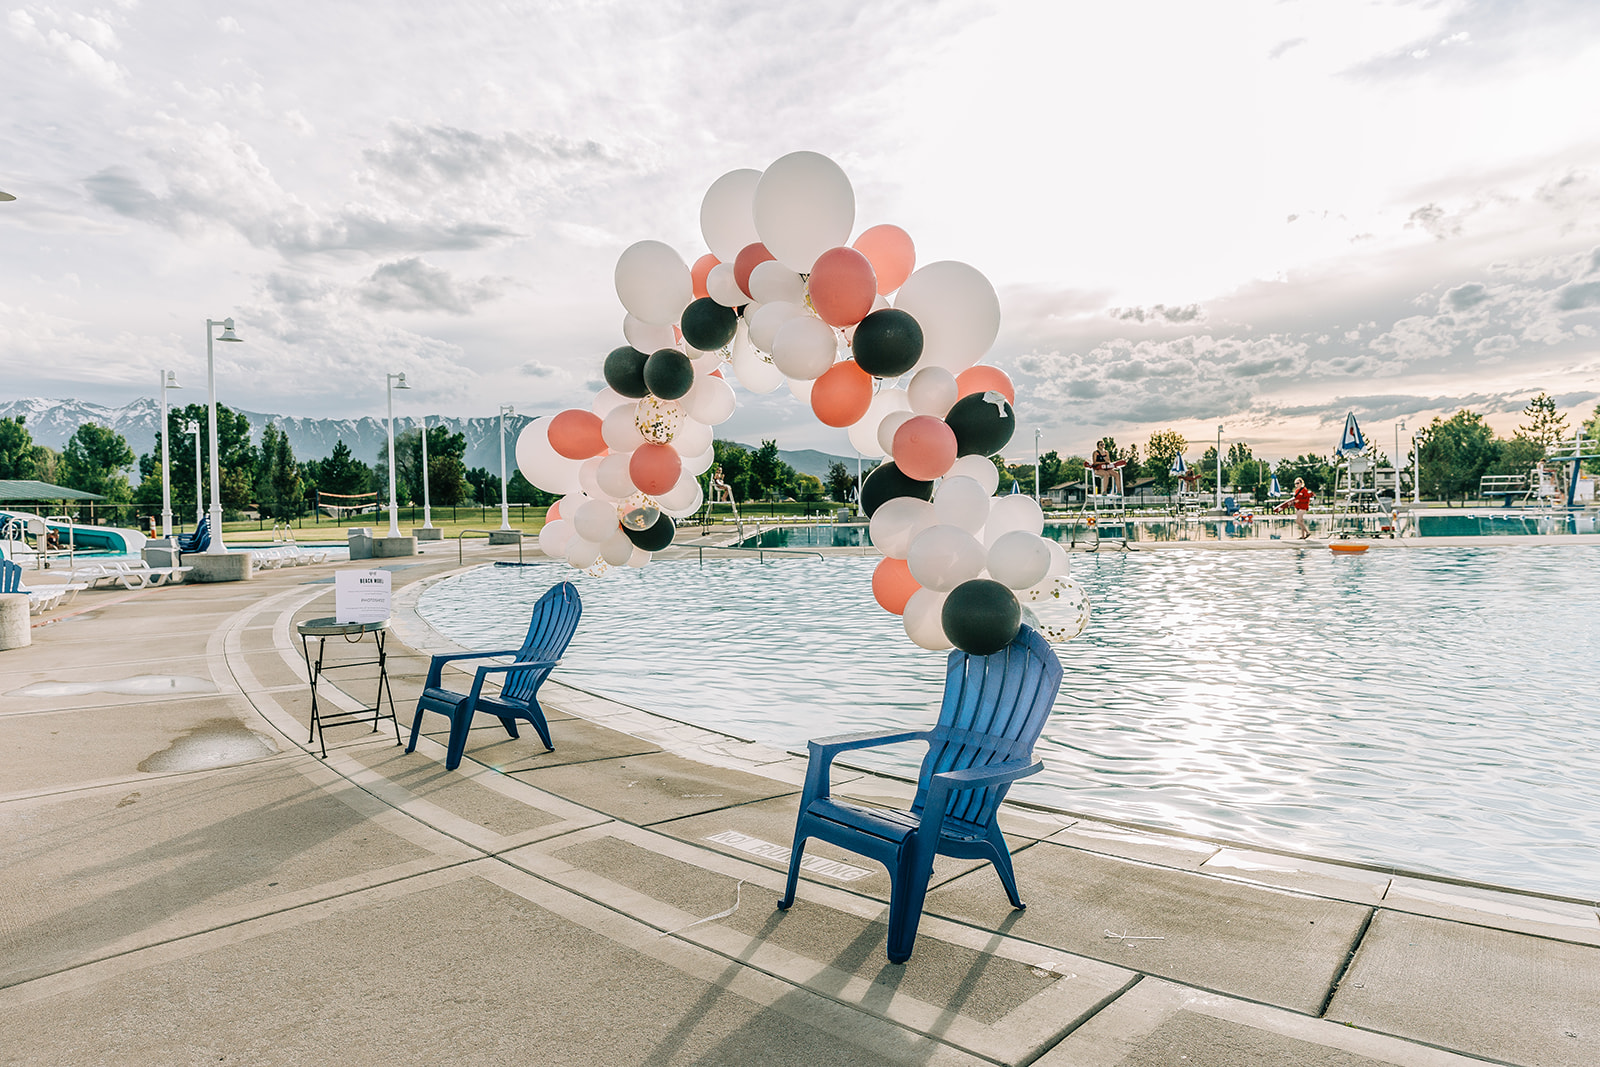 Professional photographer at event commercial pool party with nani swimwear at logan aquatic center pool party inspo by bella alder photography commercial photographer #bellaalderphoto #poolparty #professionalevent #eventinspo #poolpartyinspo #commercialevent #commercialphotography